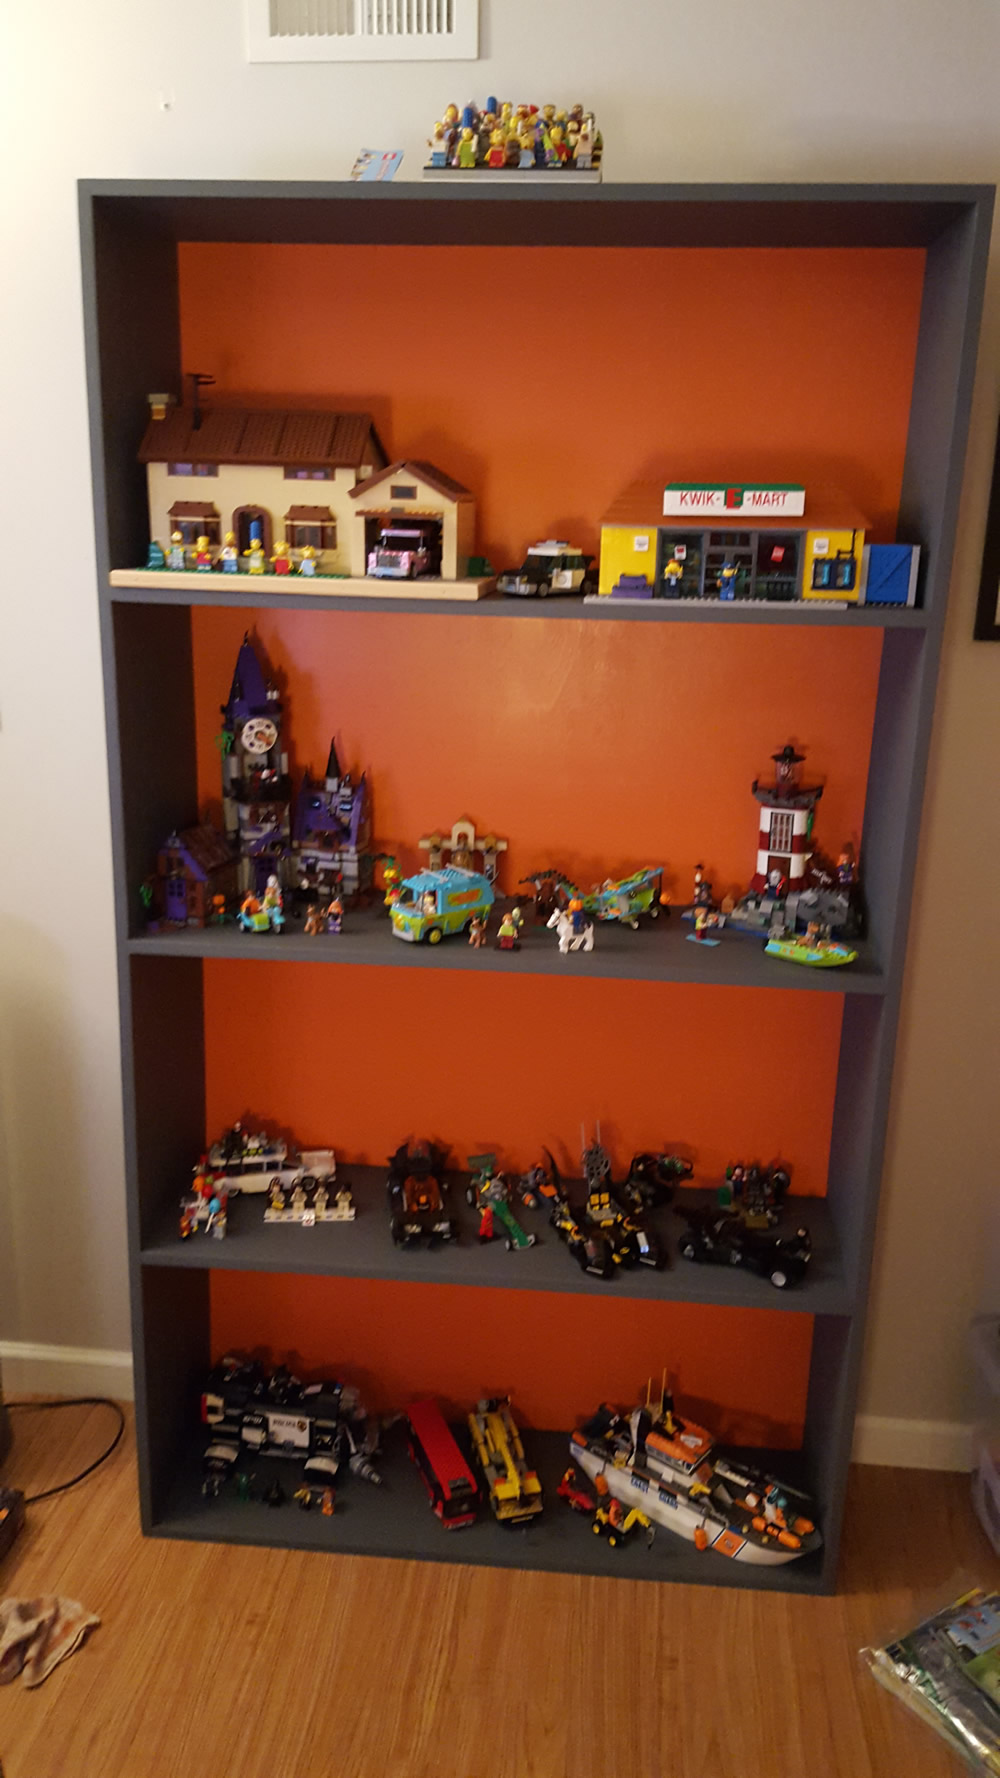 used shelf s room remodel bookcase one bookshelf uncategorized we collection legos desk suitable bookcases lego pleasur lovely shelving unit new me and ikea amazing hypnotizing of lack horrible sale full for to display best shelves design wall size with boy about black